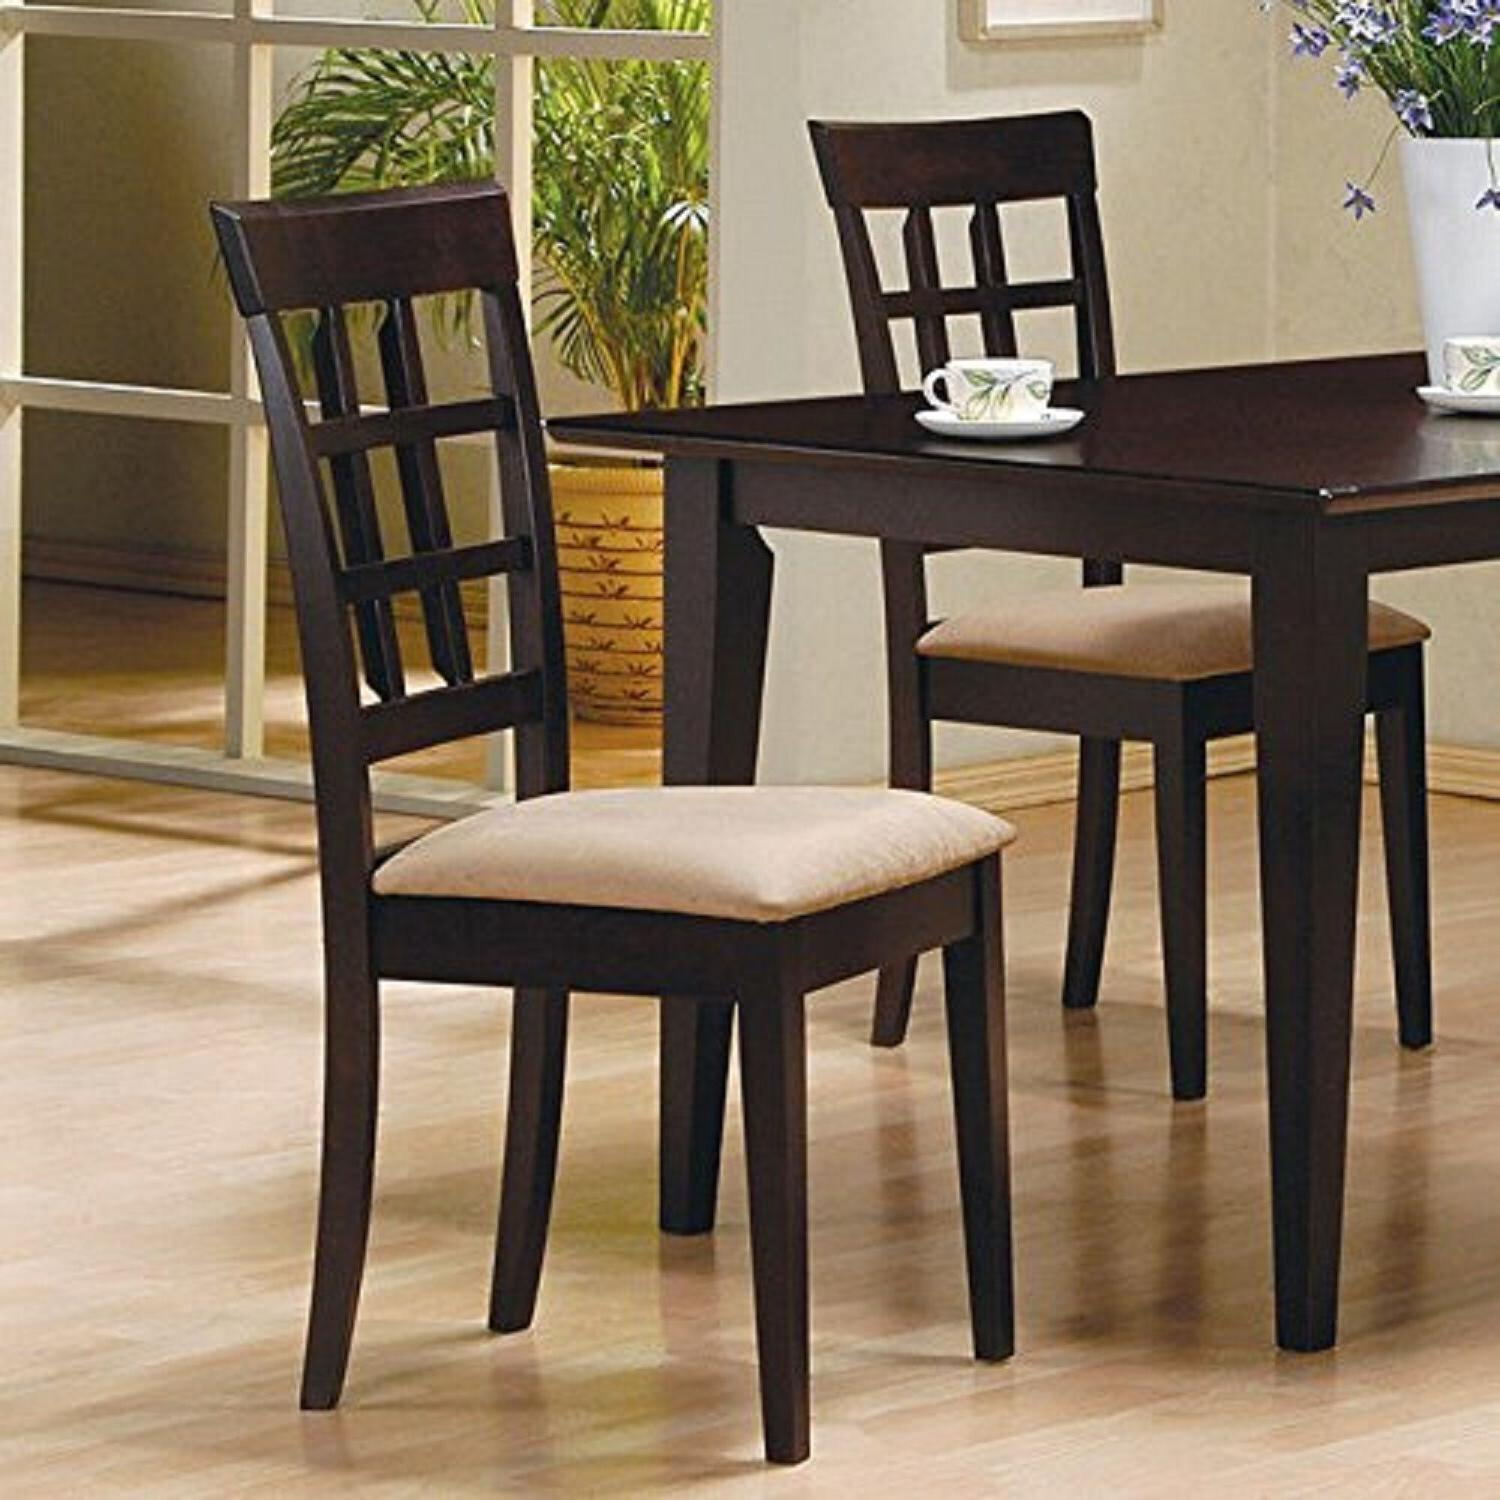 Dining Chair 2 Cushion Wood Seat New